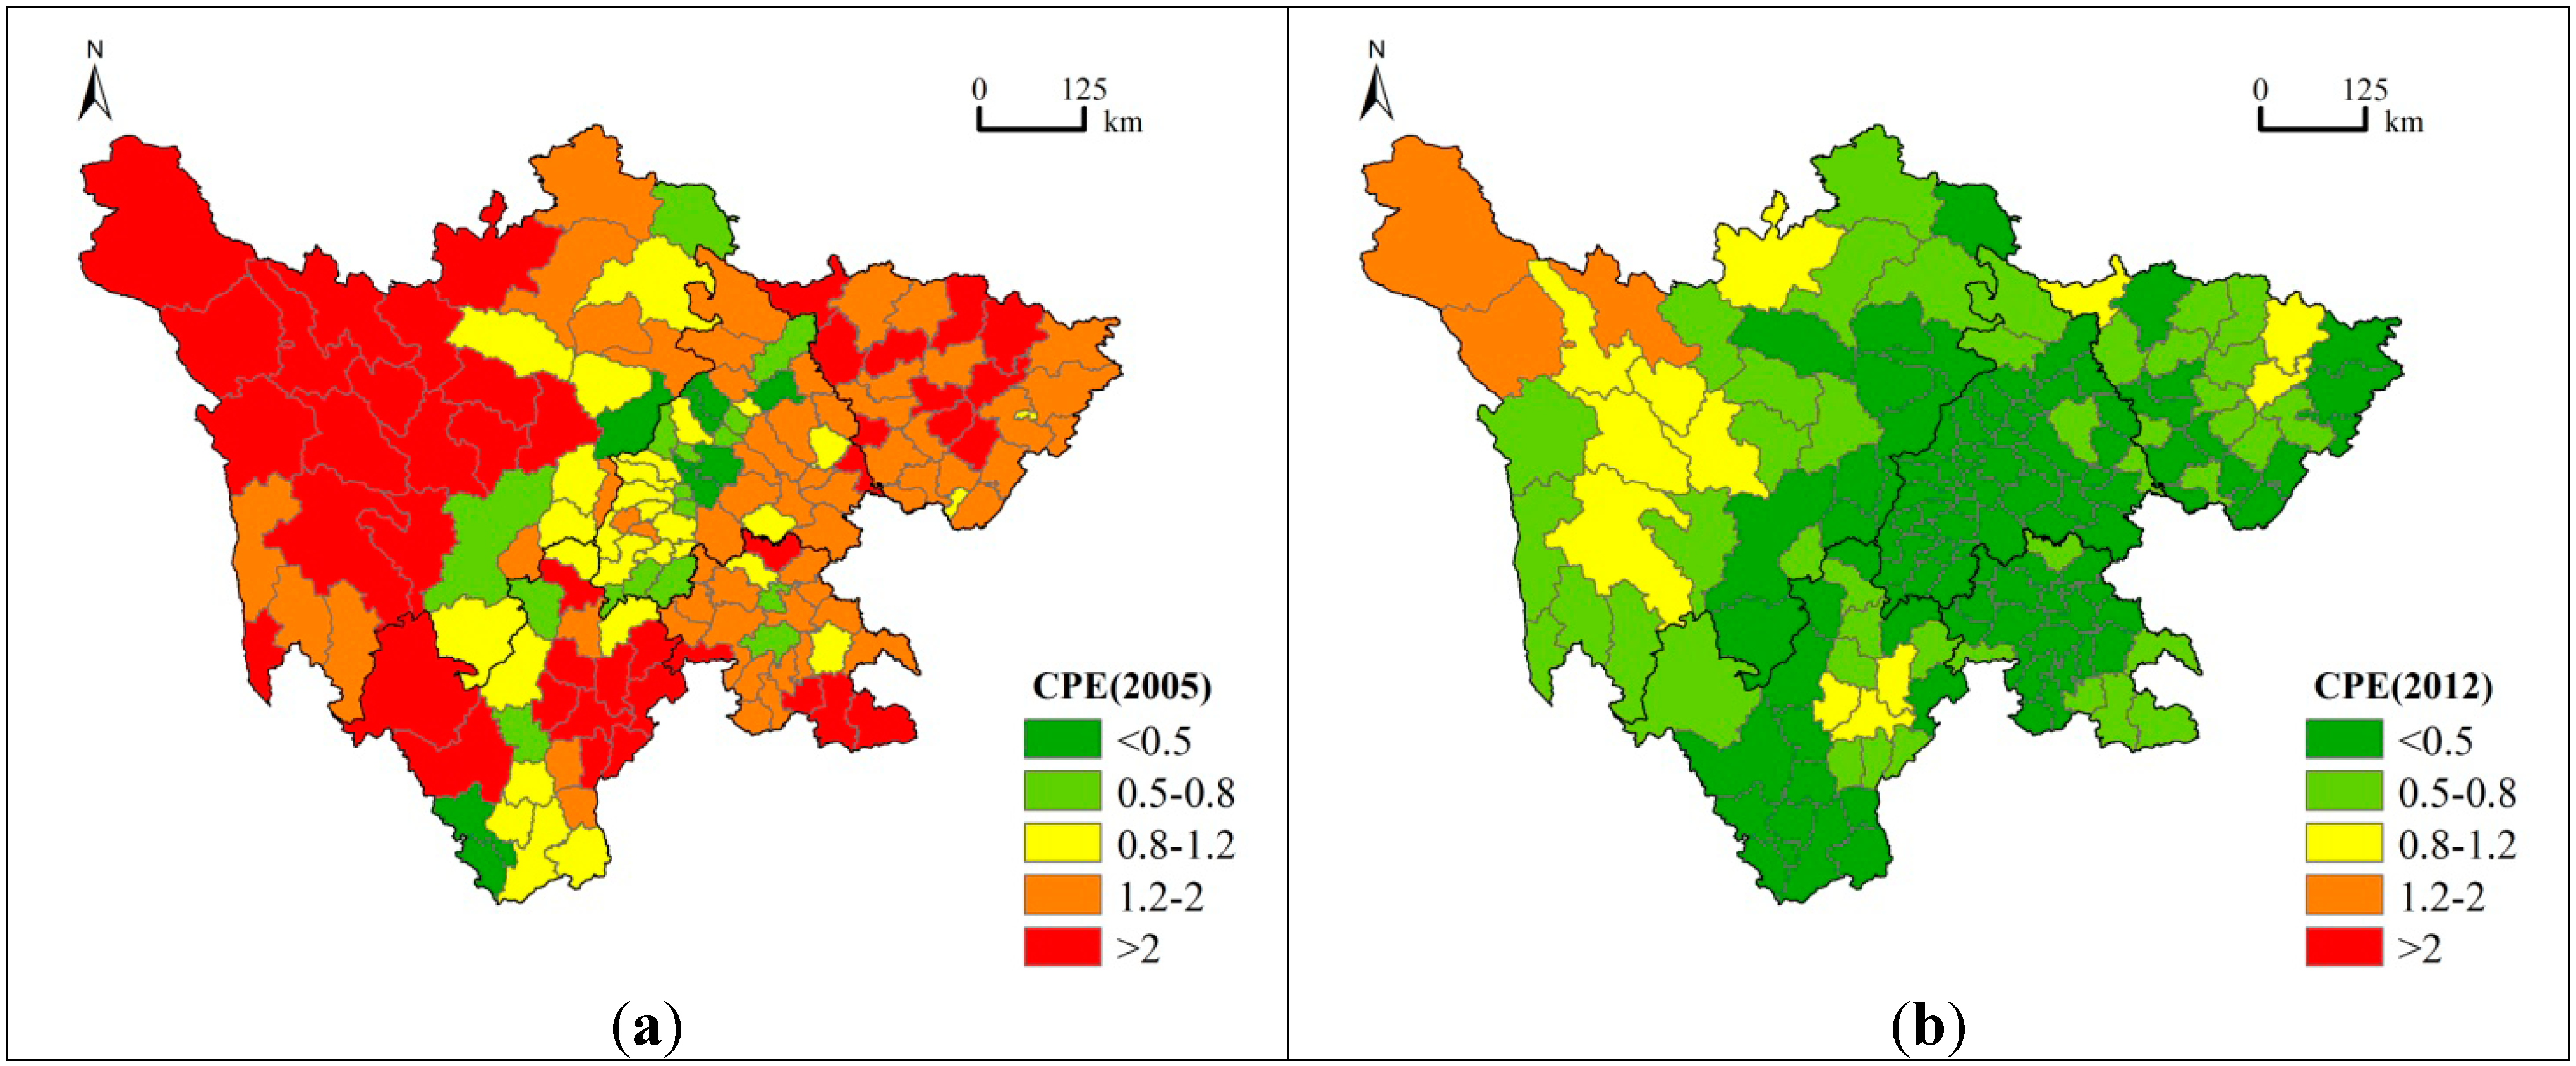 Spatial Distribution of Migration and Economic Development: A Case Study of Sichuan Province, China